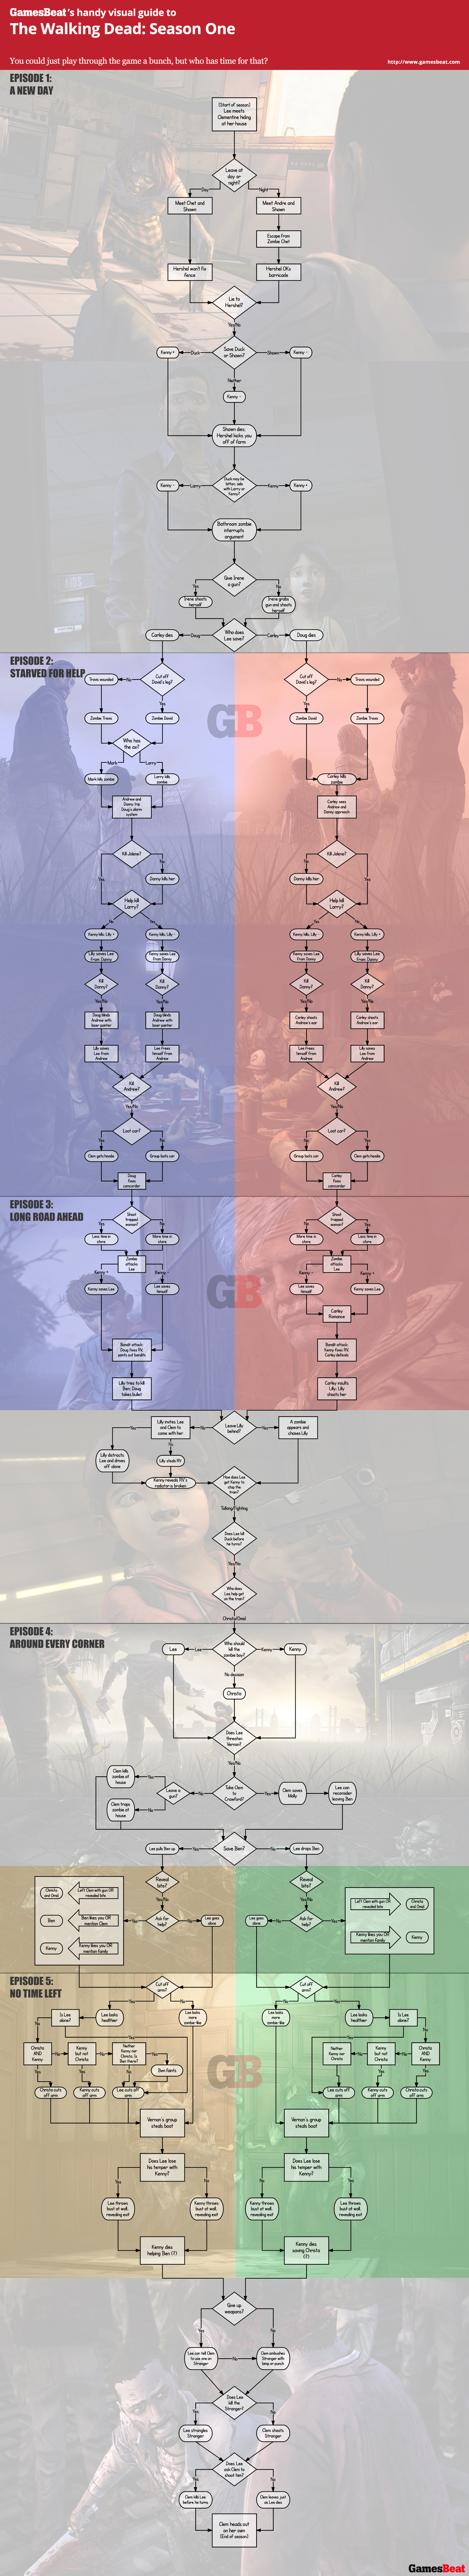 Heres a chart of every choice in the walking dead season 1 image heres a chart of every choice in the walking dead season 1 image gamesbeat ccuart Image collections